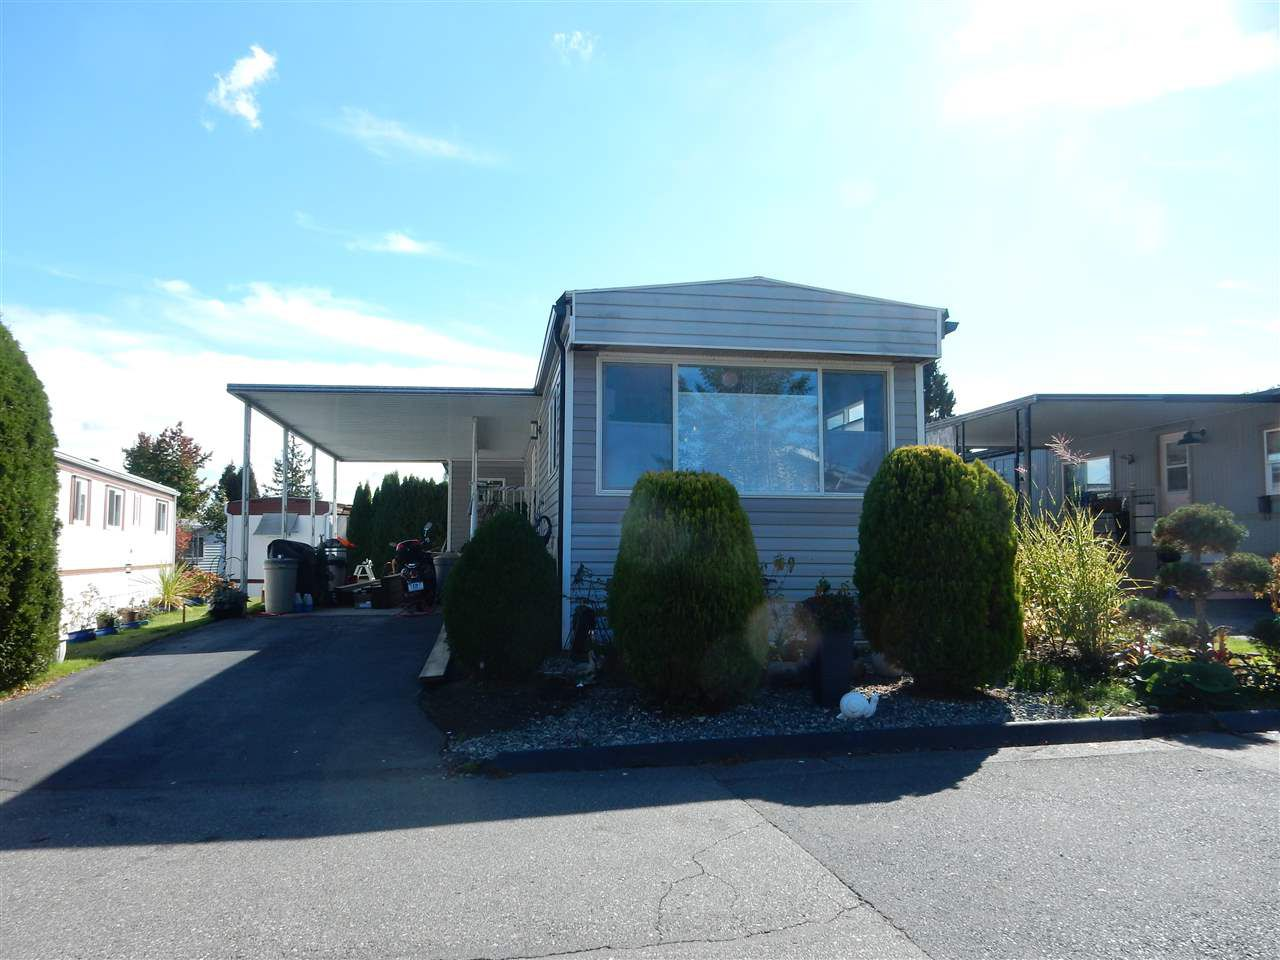 """Main Photo: 49 1840 160 Street in Surrey: King George Corridor Manufactured Home for sale in """"Breakaway Bays"""" (South Surrey White Rock)  : MLS®# R2115756"""